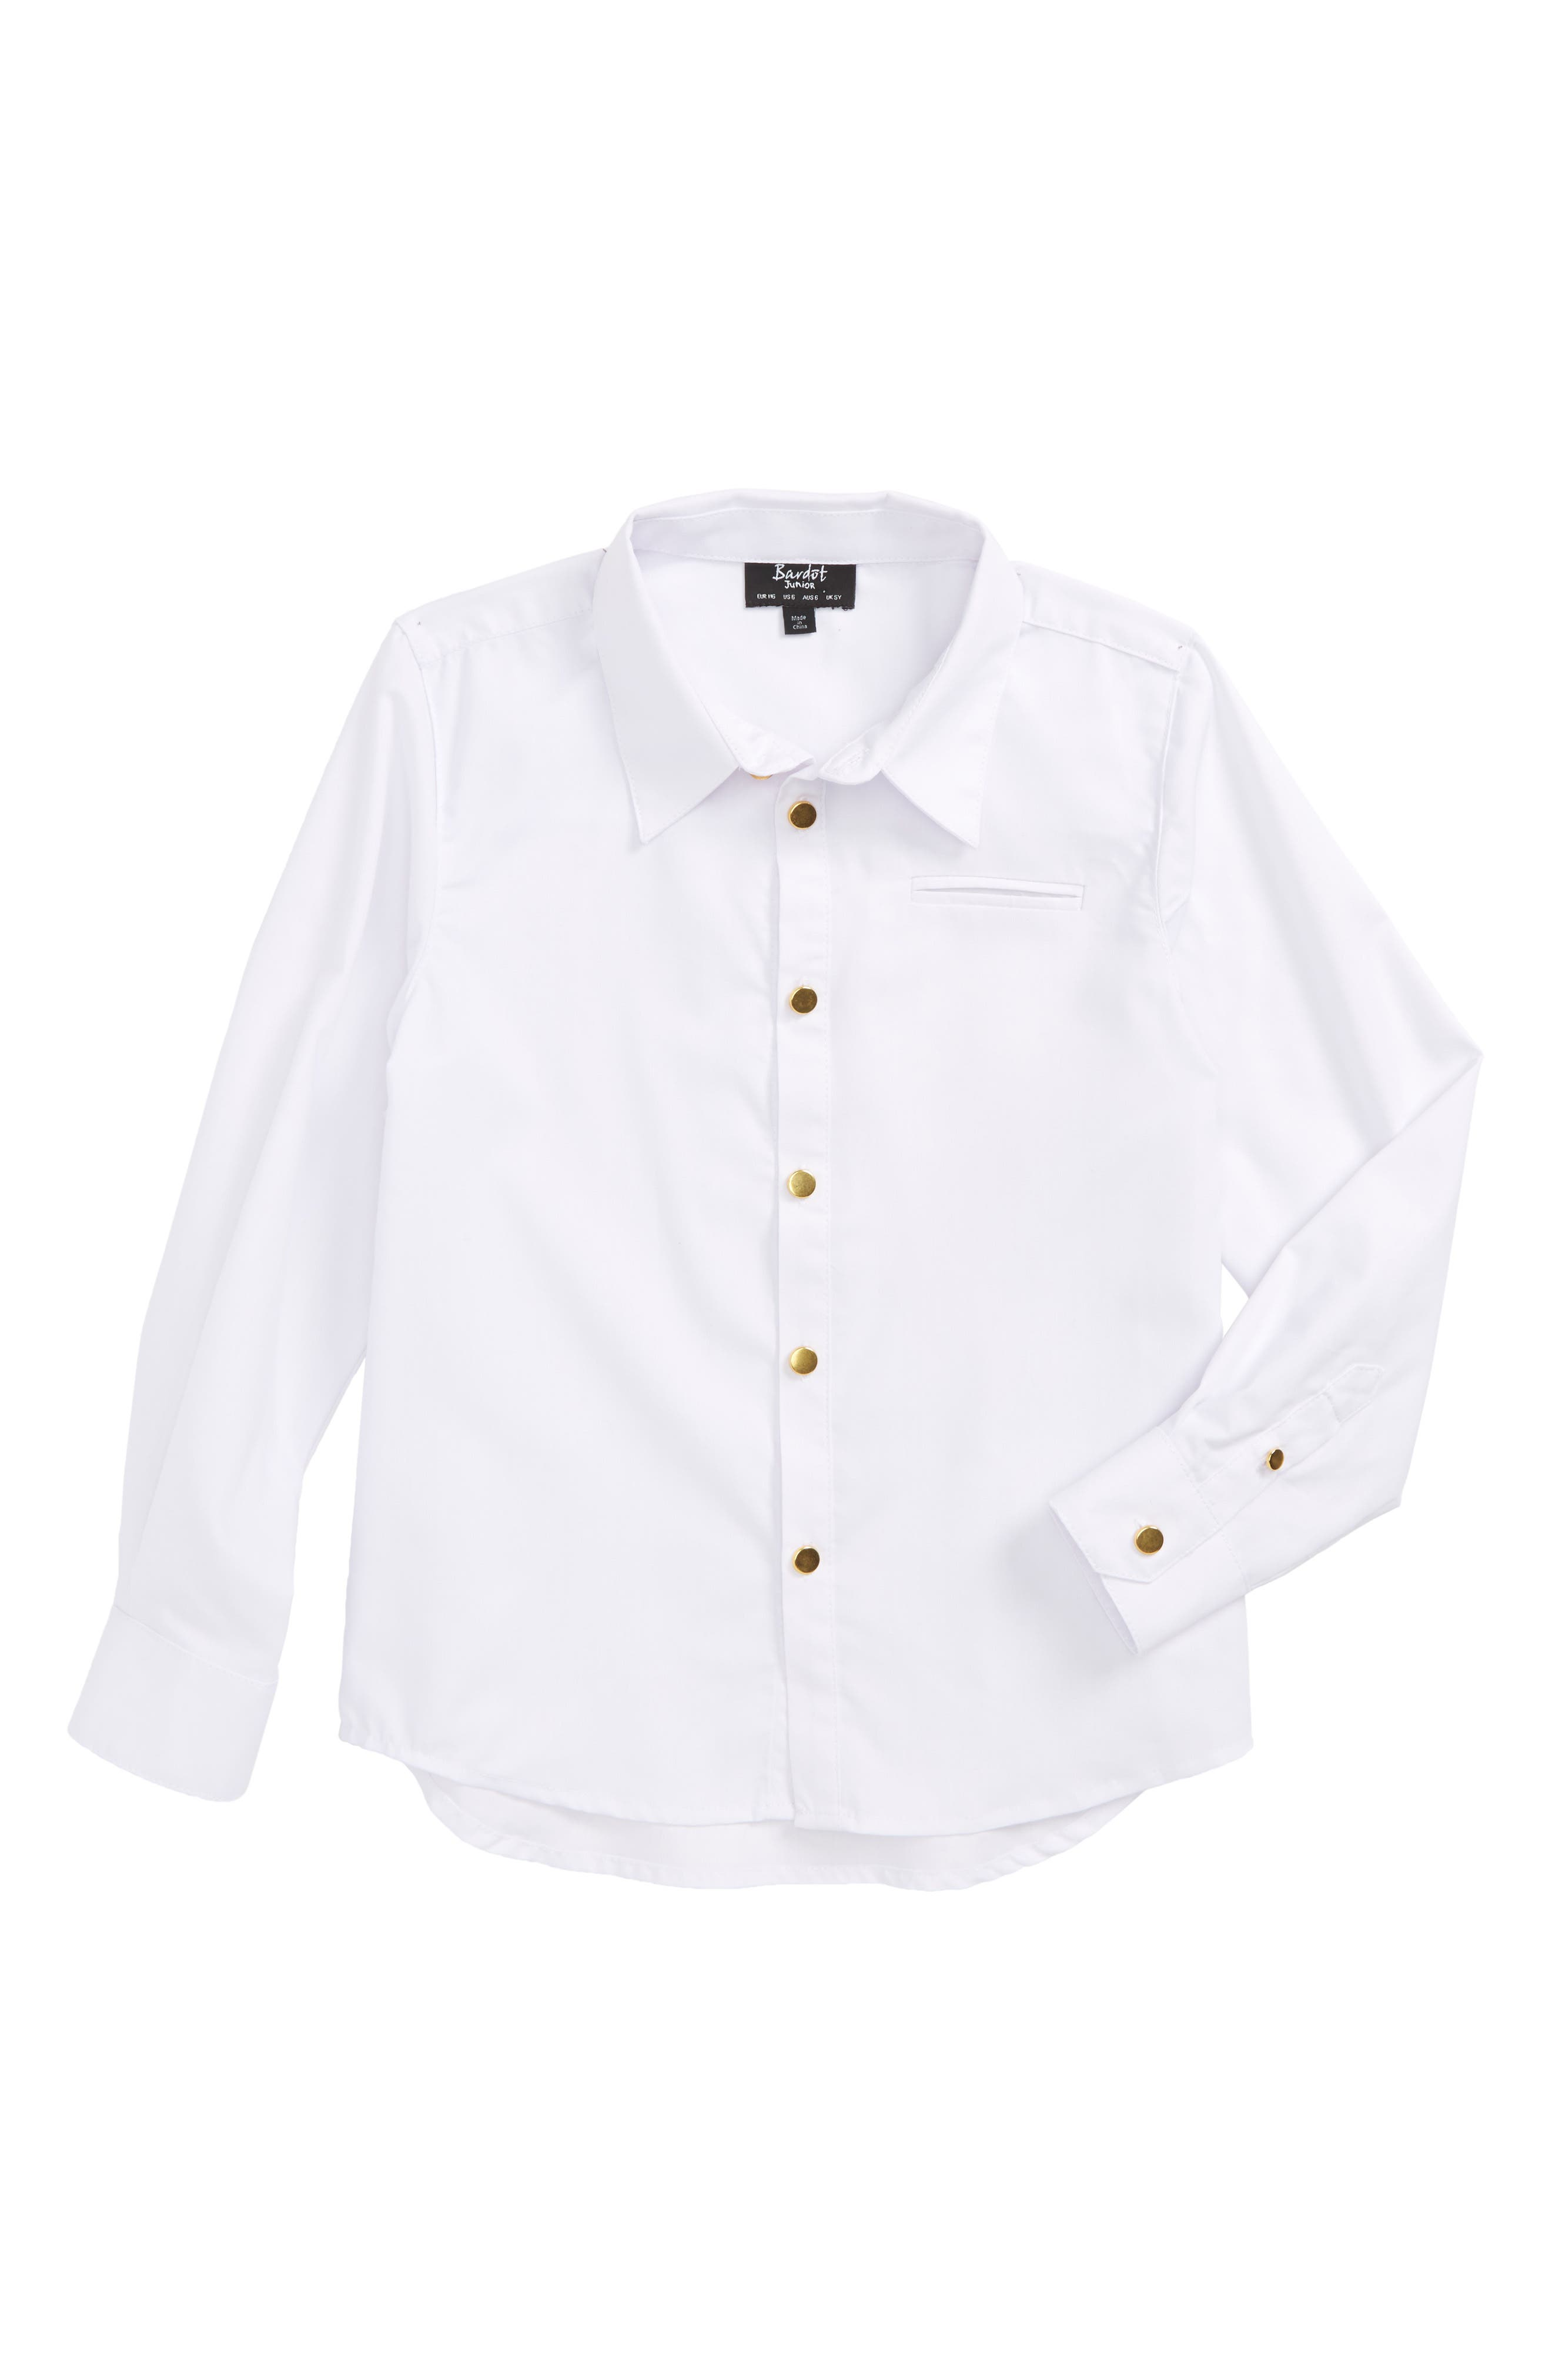 Bardot Junior Goldtone Button Shirt (Toddler Boys & Little Boys)